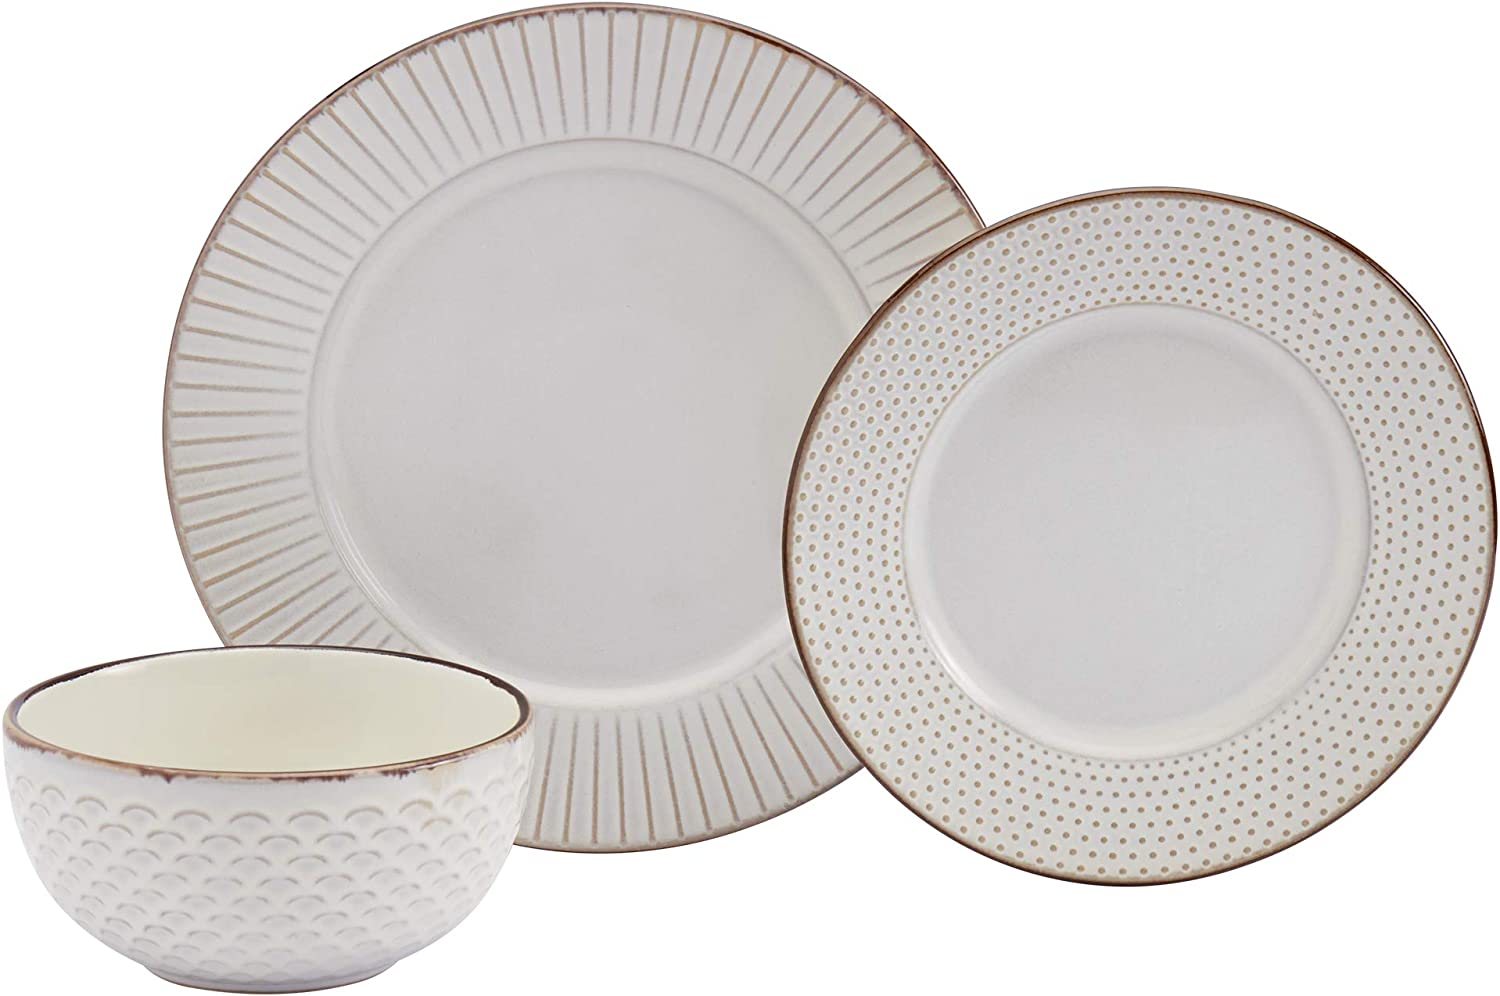 Tabletops Gallery Fashion Dinnerware Collection- Stoneware Embossed Rimmed Round Dishes Service for 4 Dinner Salad Appitizer Dessert Plate Bowls, 12 Piece Monroe in Cream